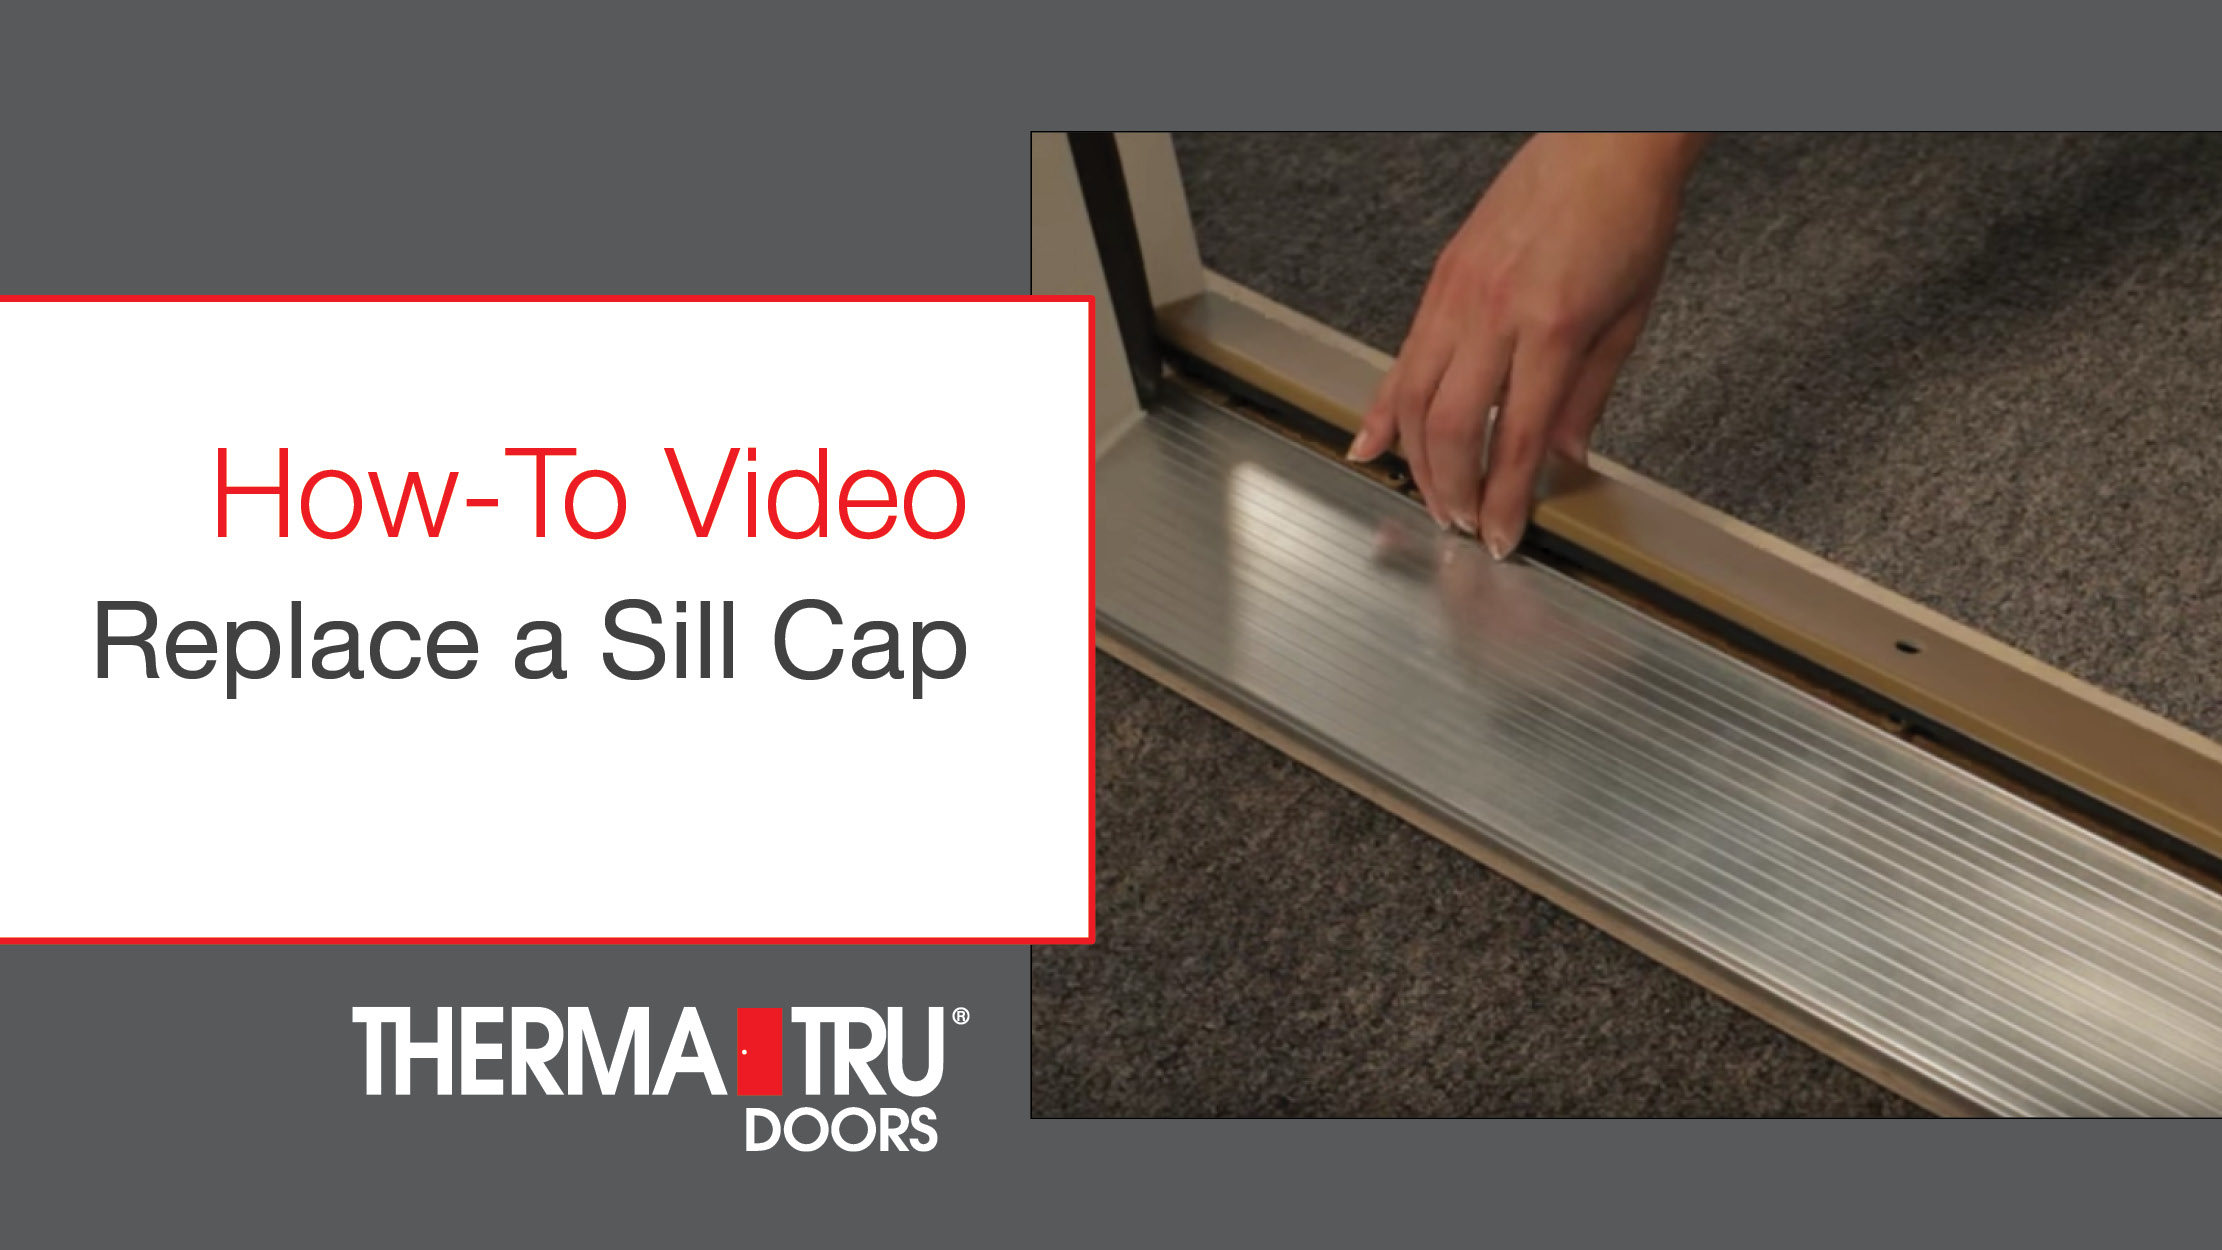 Video Gallery Therma Tru Doors